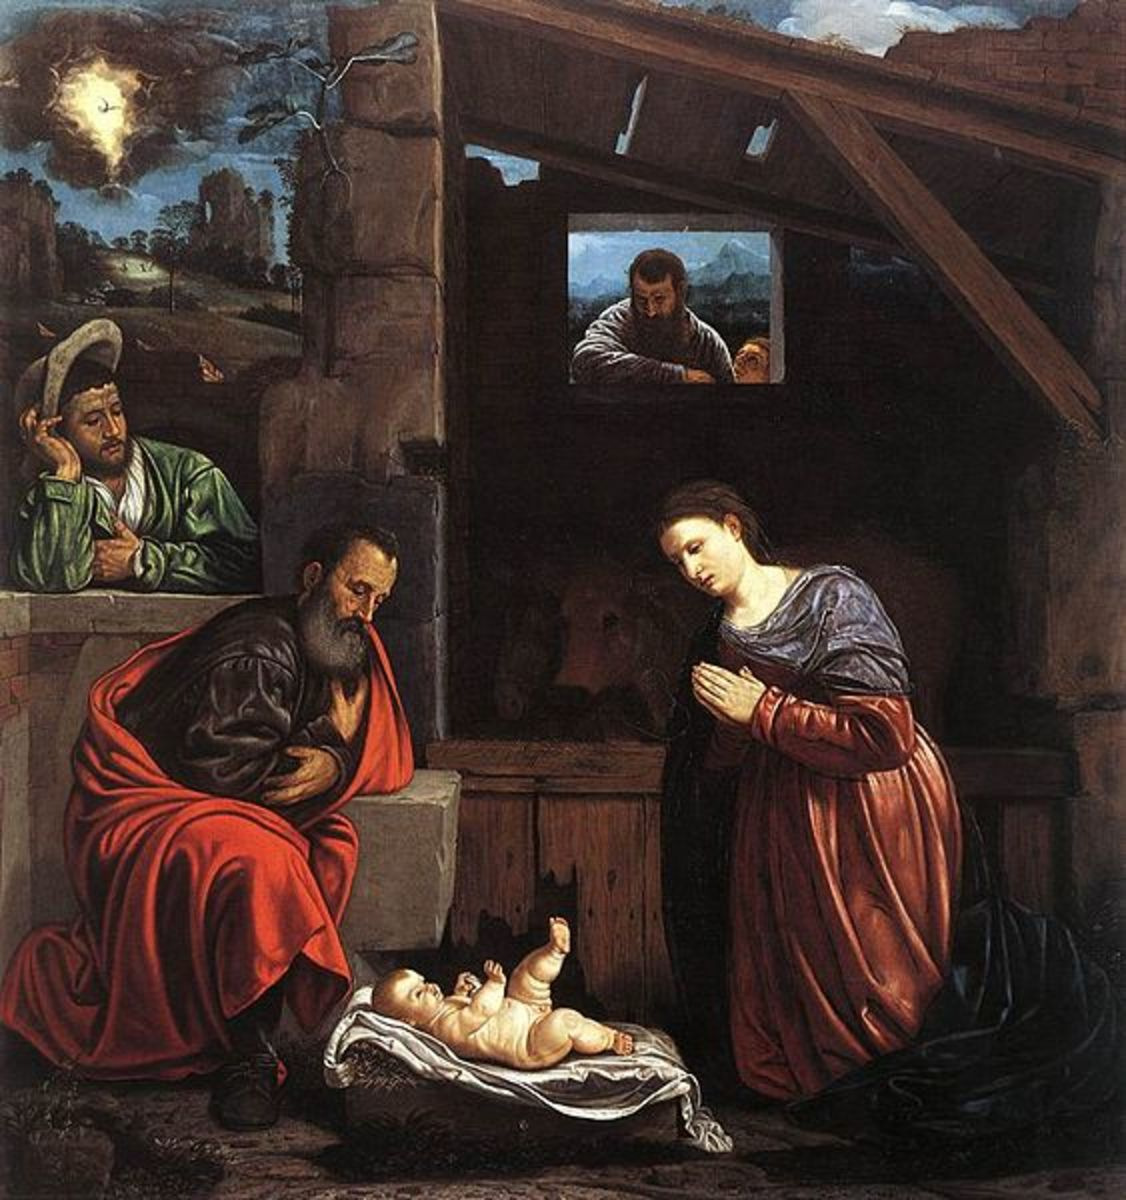 Savoldo, Adoration of the Shepherds (a. 1540), Brescia Pinacoteca Tosio Martinengo